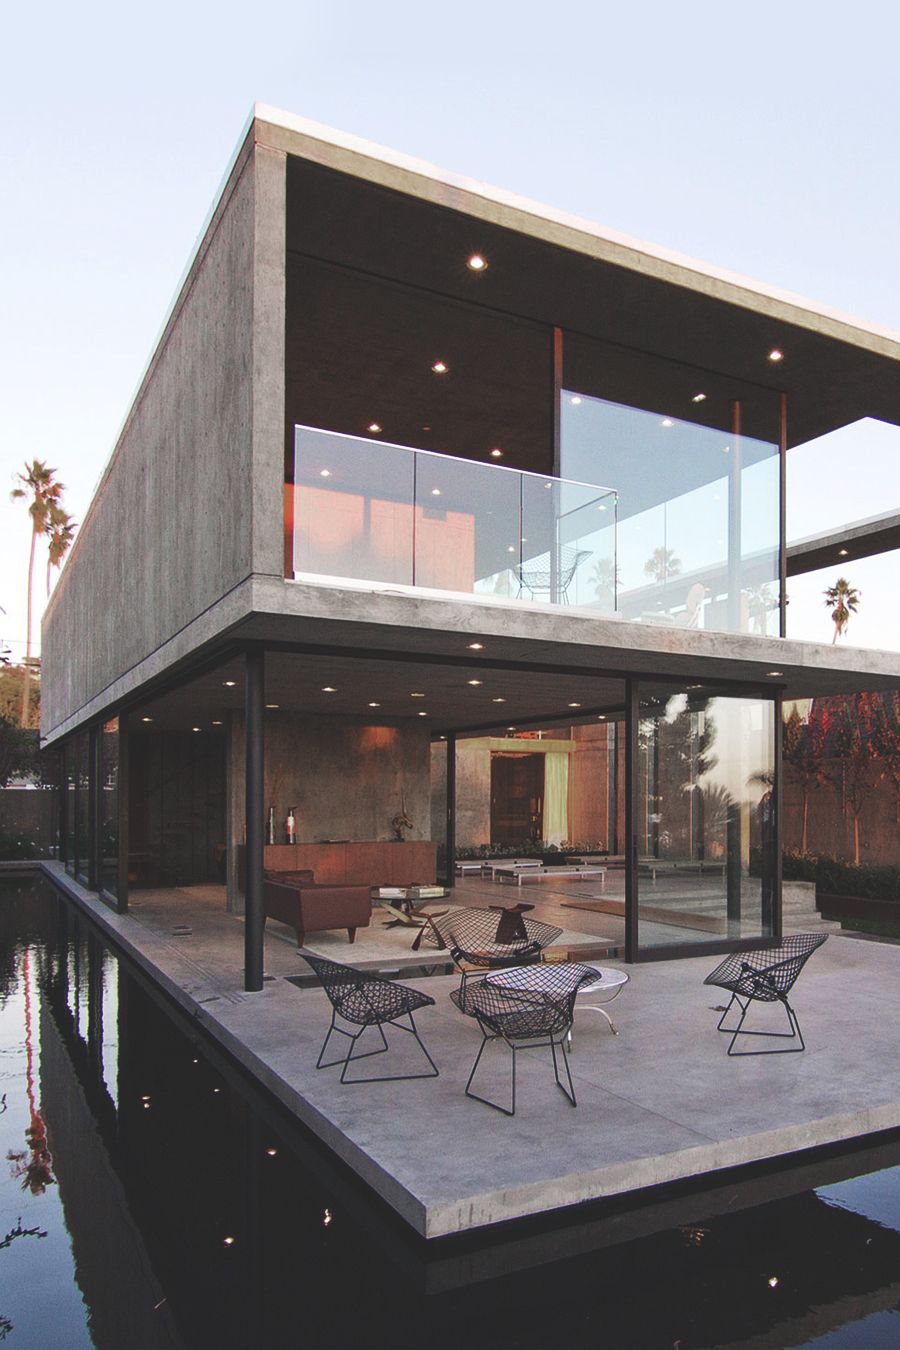 building container home contemporary architecture concrete design residential also hard ride scor chio on pinterest rh